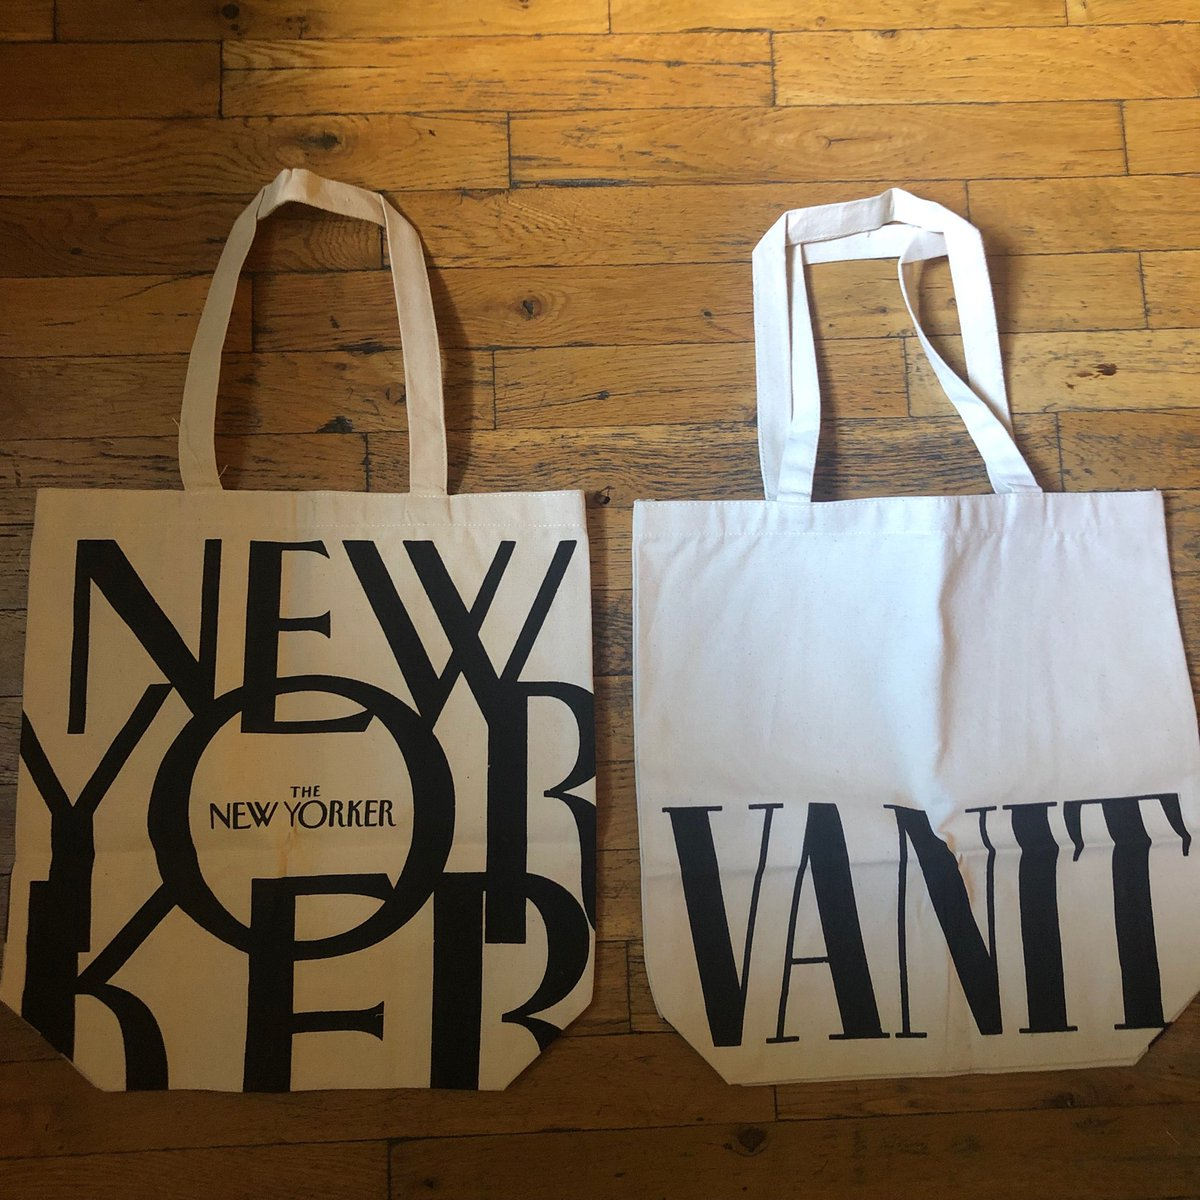 Decisions. Decisions. Which newly arrived tote bag will I take with me to P'town this weekend?